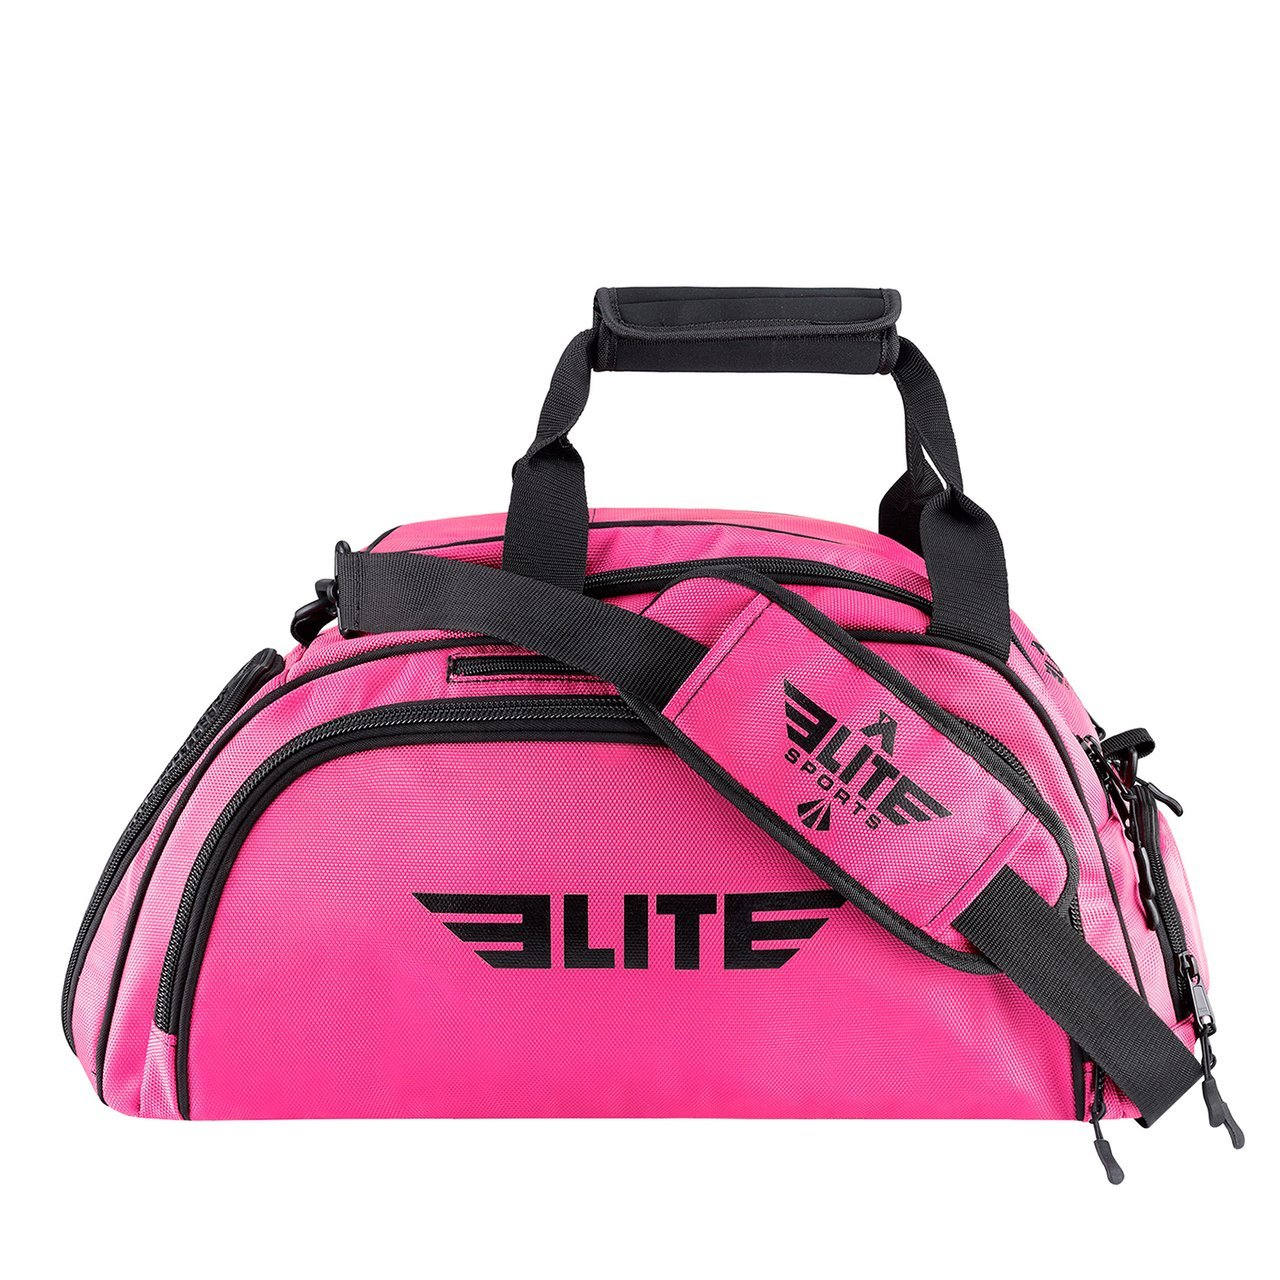 Load image into Gallery viewer, Elite Sports Warrior Series Pink Medium Duffel Taekwondo Gear Gym Bag & Backpack